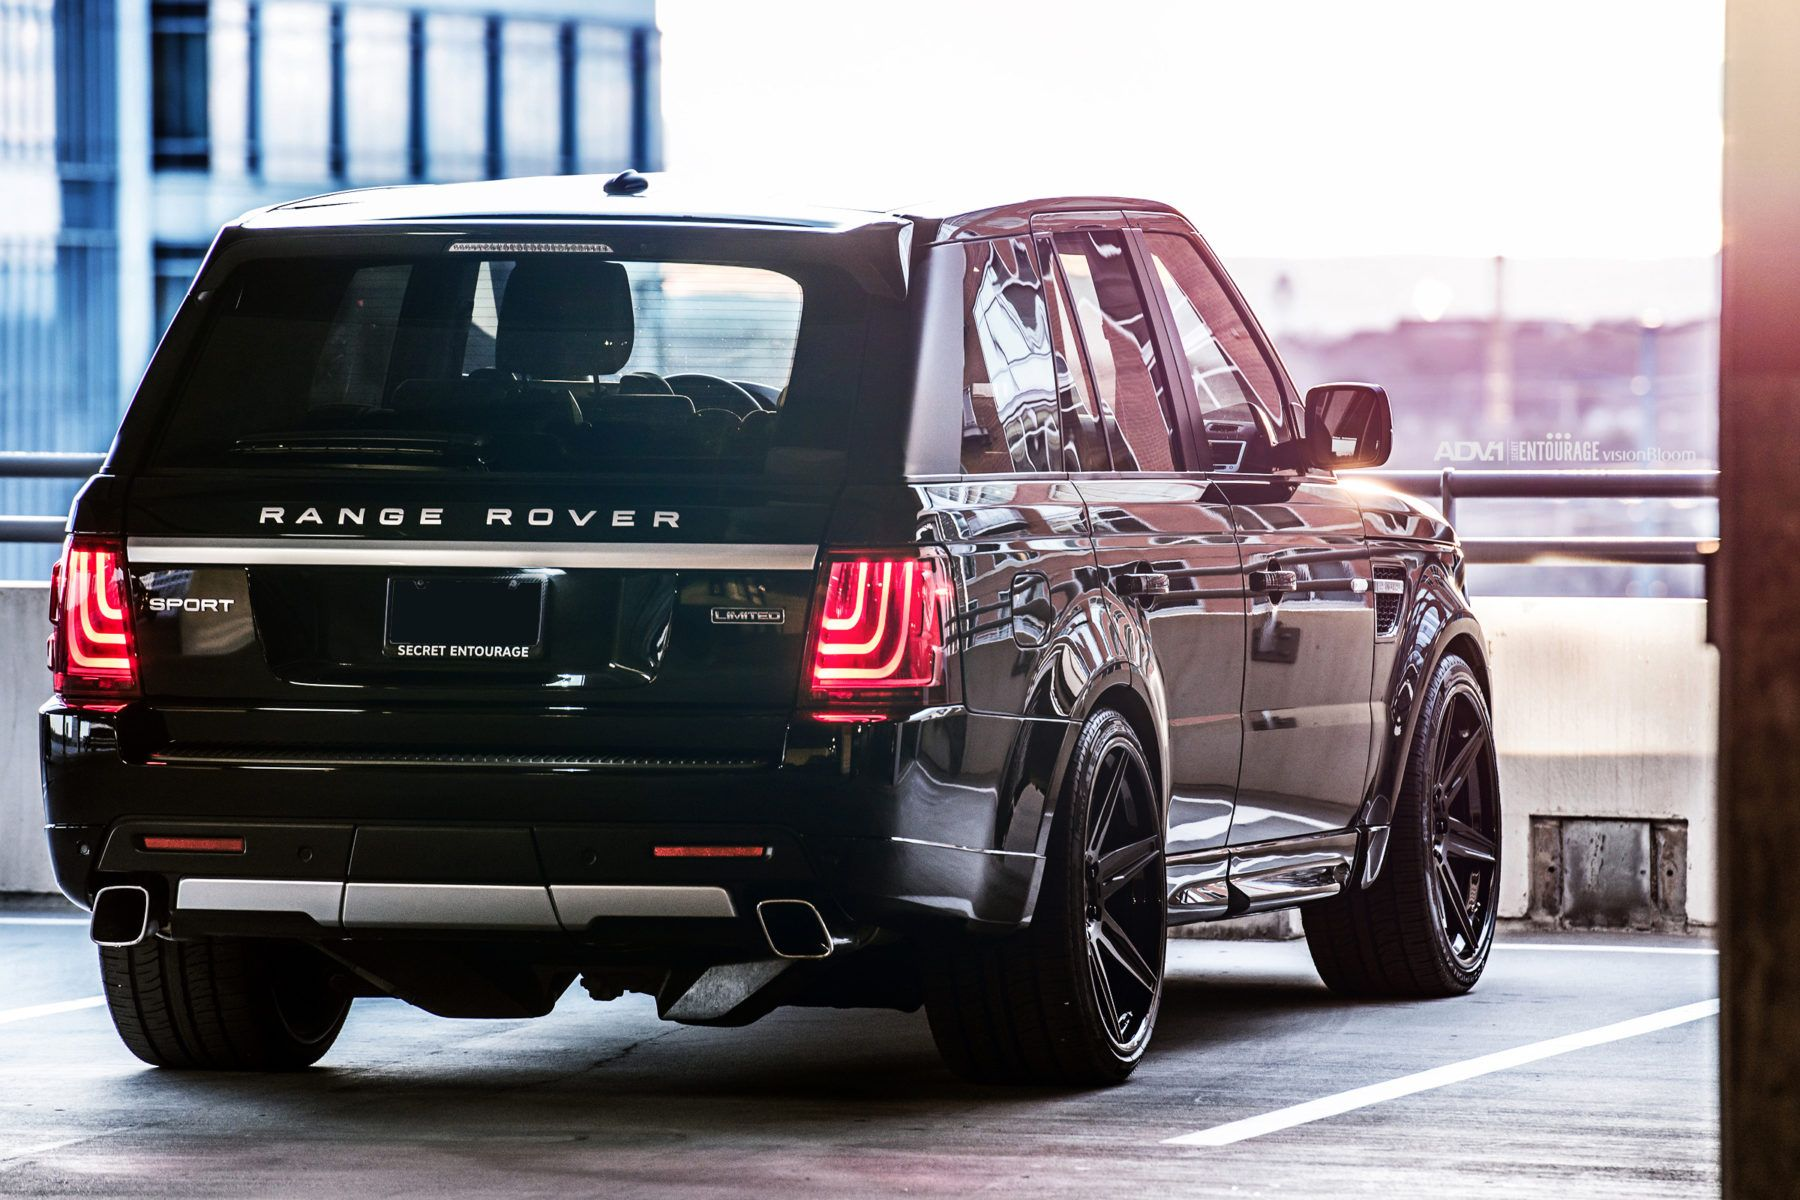 secrete entourage range rover sport black wheels 6 spoke 24 inch rims 1800 1200 land. Black Bedroom Furniture Sets. Home Design Ideas